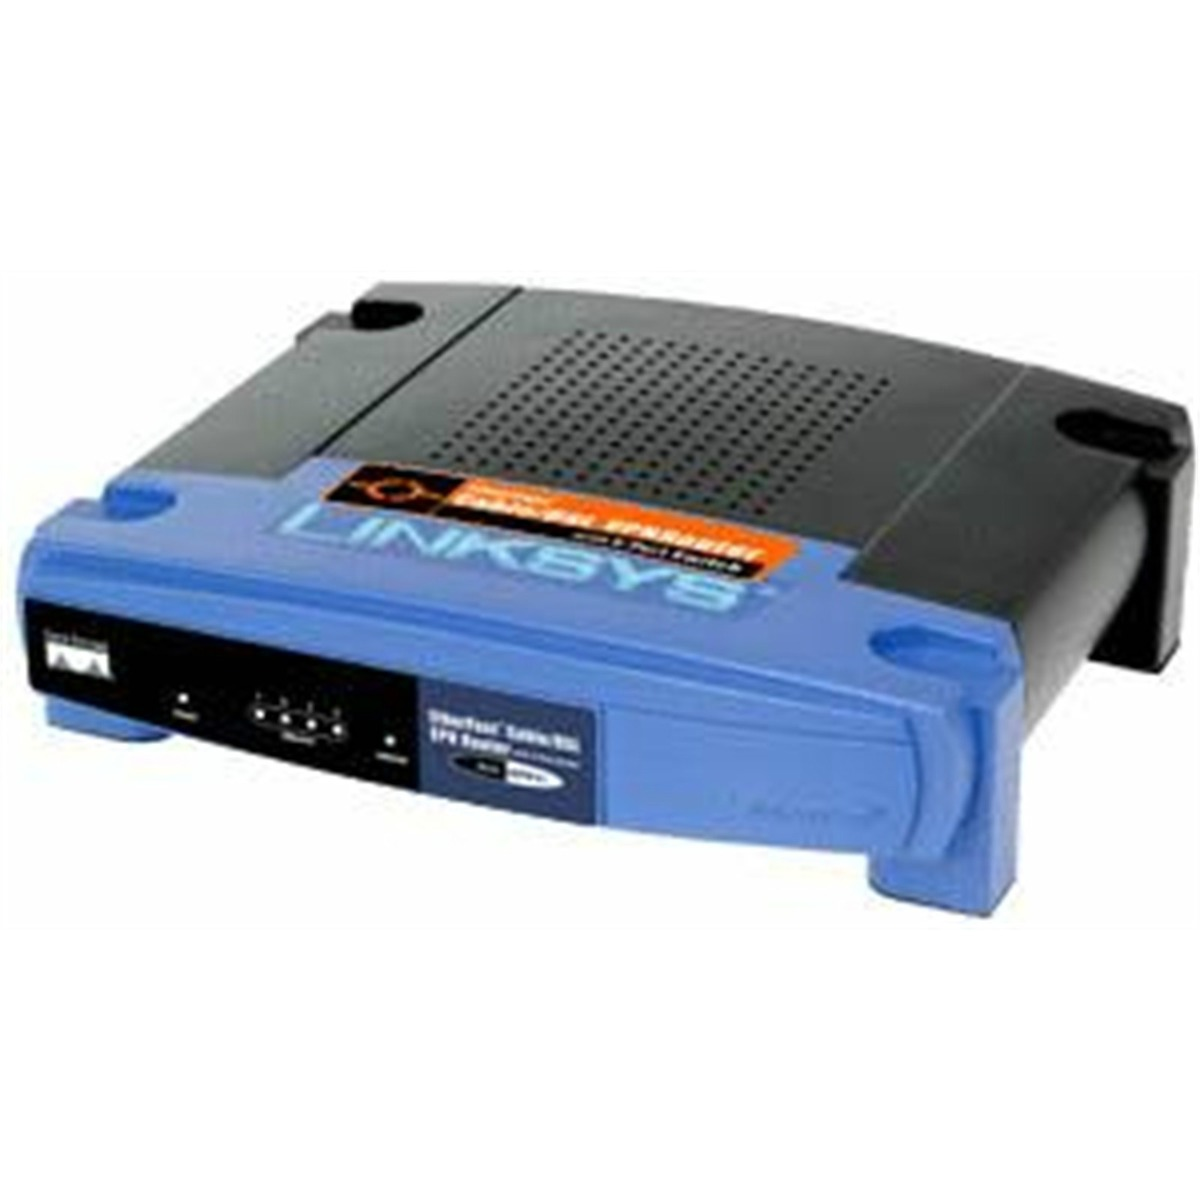 linksys wireless router setup diagram thermo king tripac wiring vpn how to